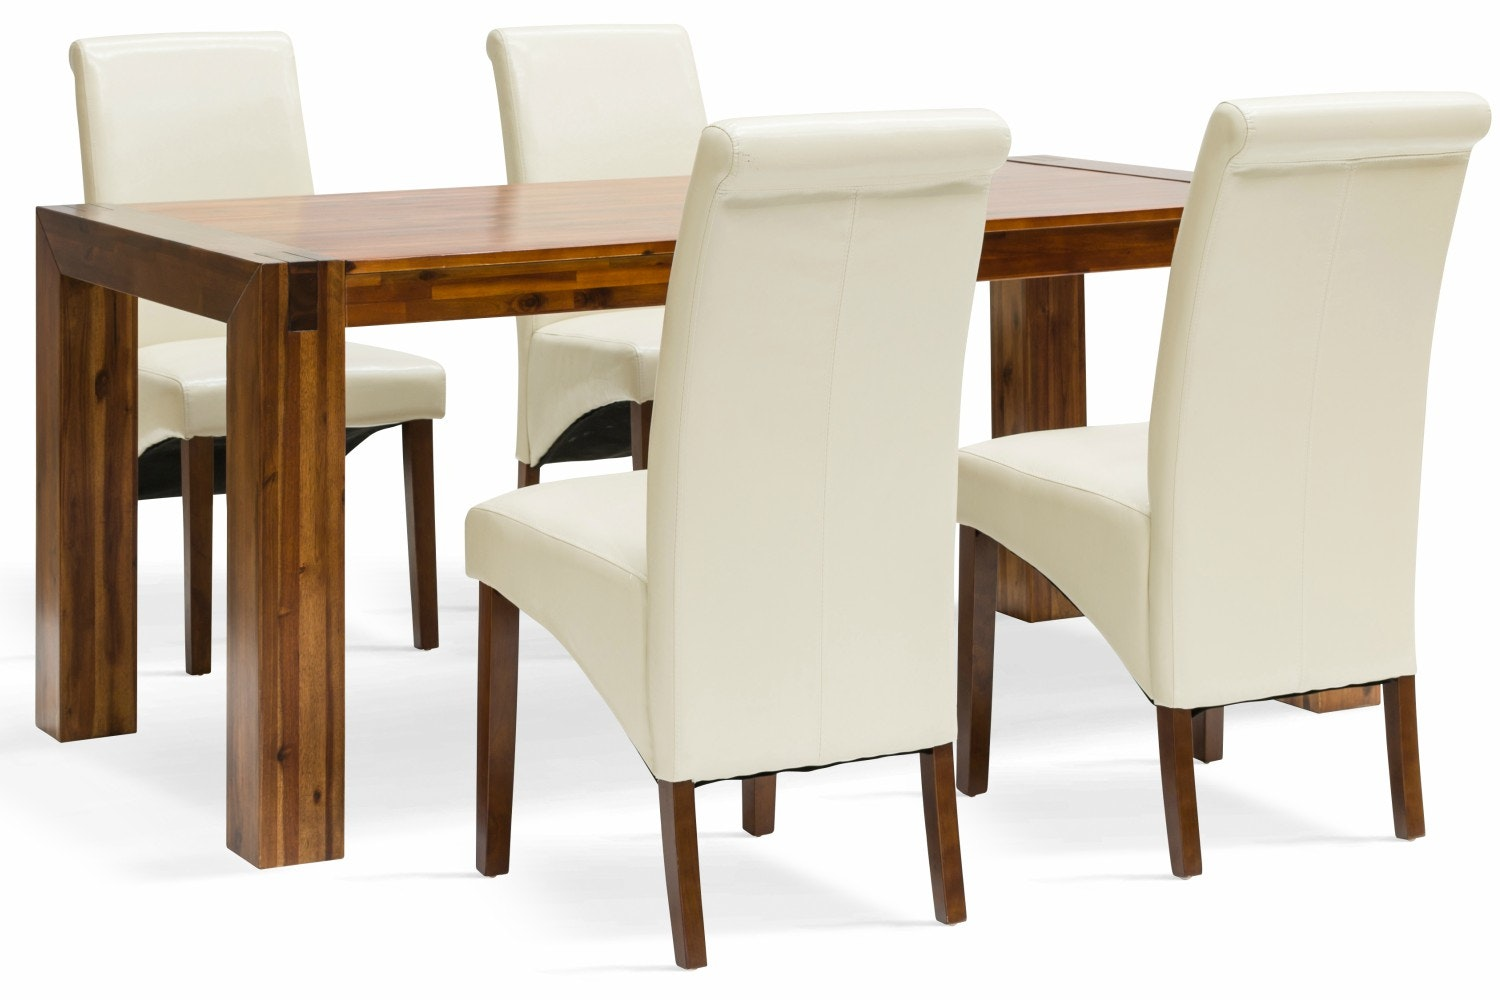 Orient 5-Piece Dining Set | Wilton Chairs